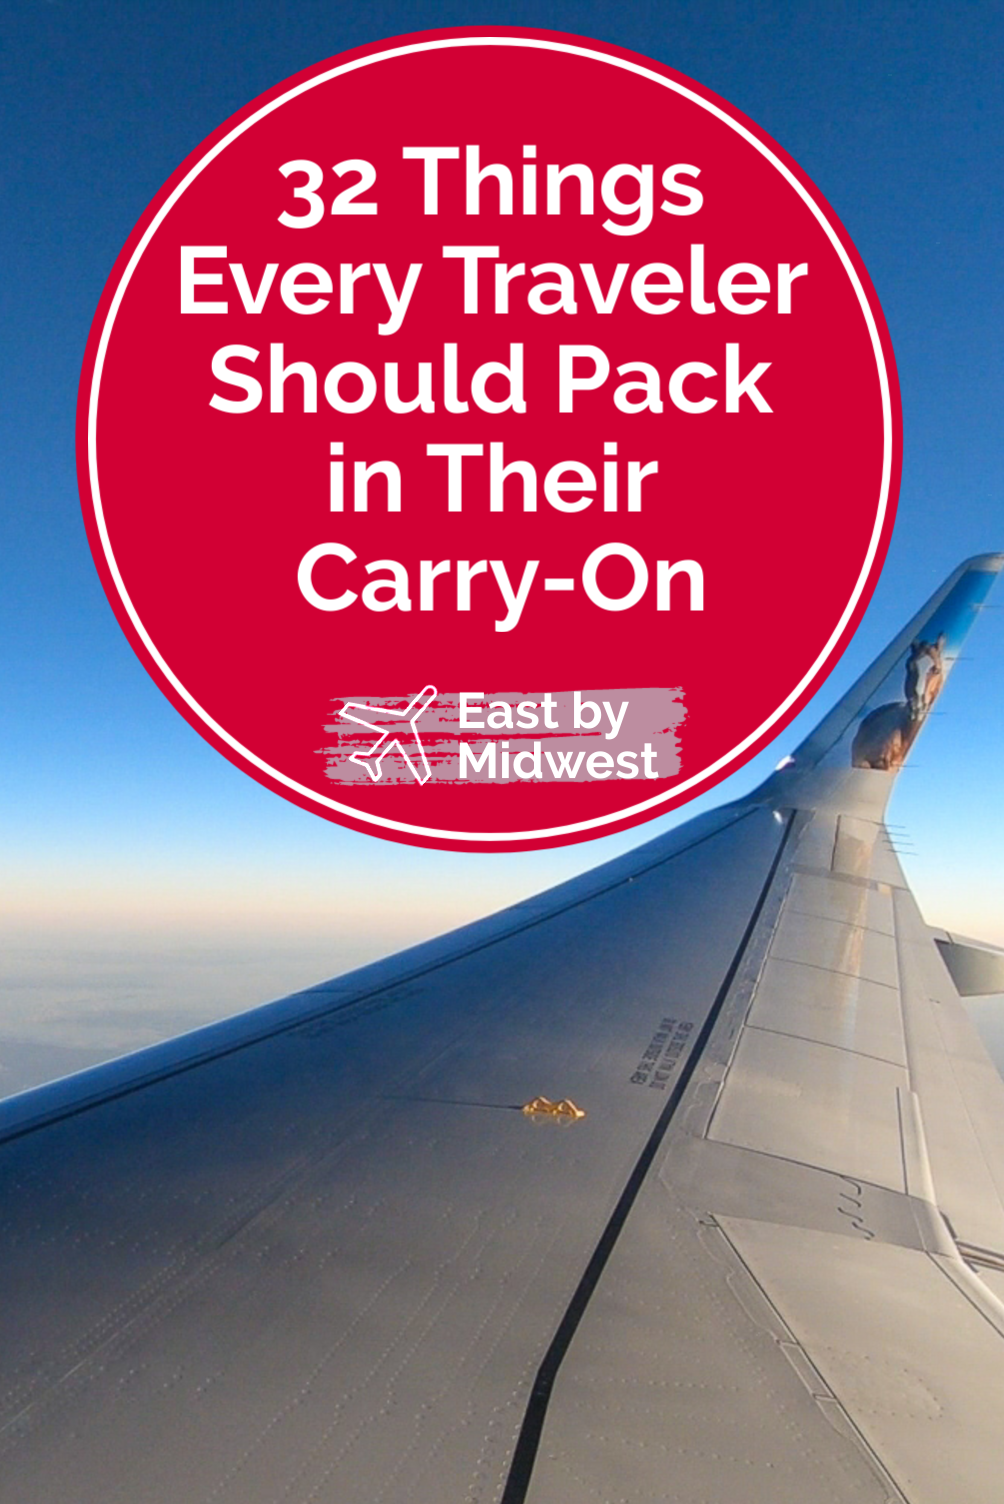 32 Things Every Traveler Should Pack in Their Carry-On